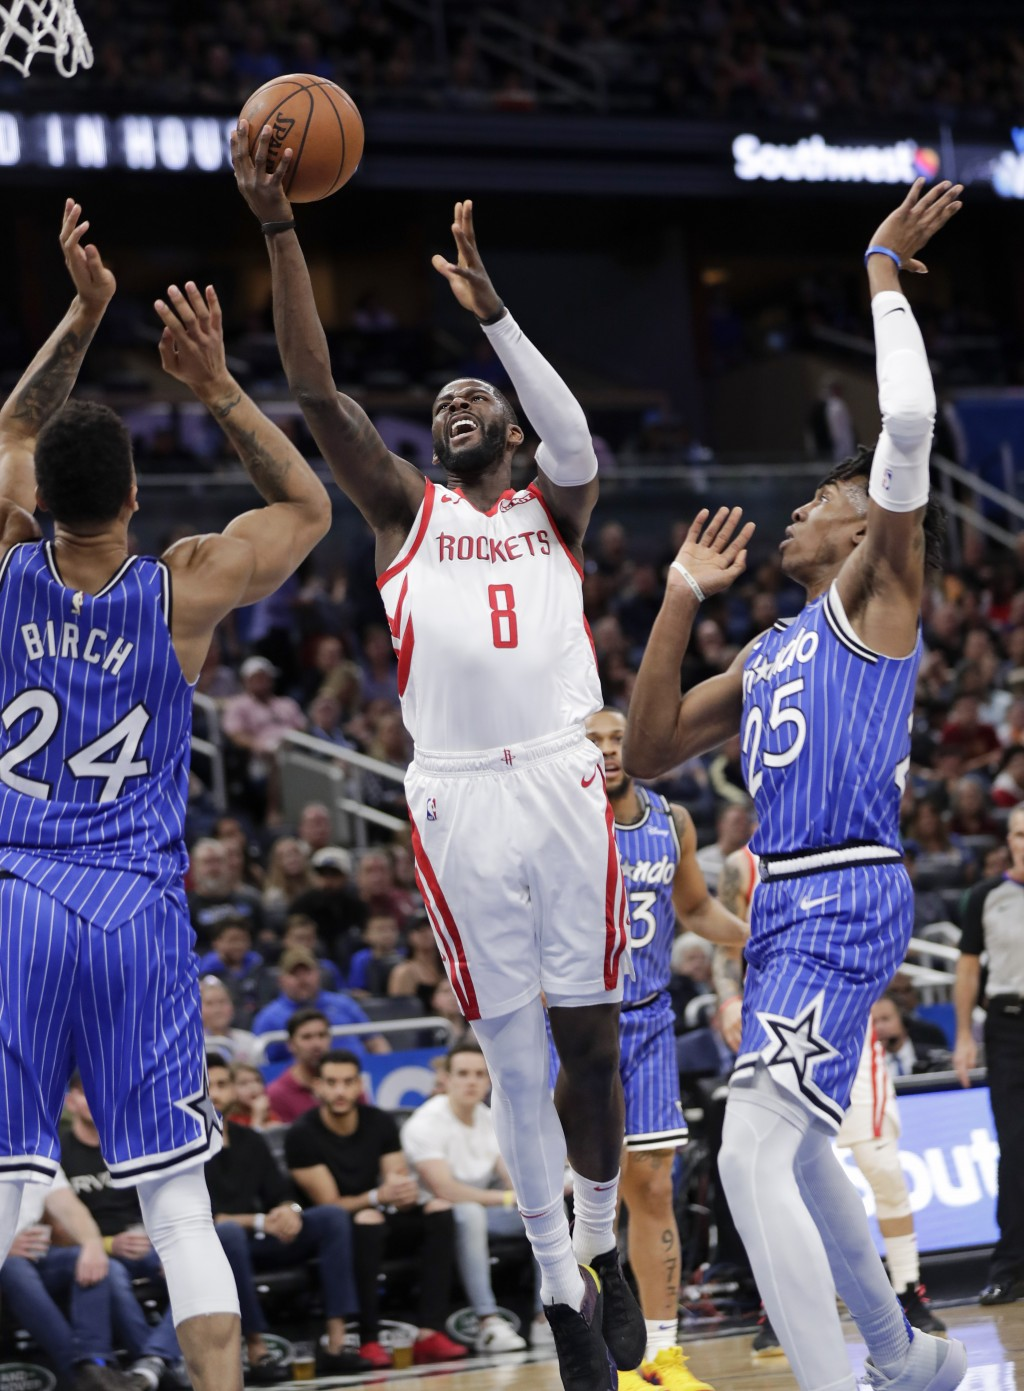 Houston Rockets' James Ennis III (8) goes to the basket between Orlando Magic's Khem Birch (24) and Wes Iwundu (25) during the first half of an NBA ba